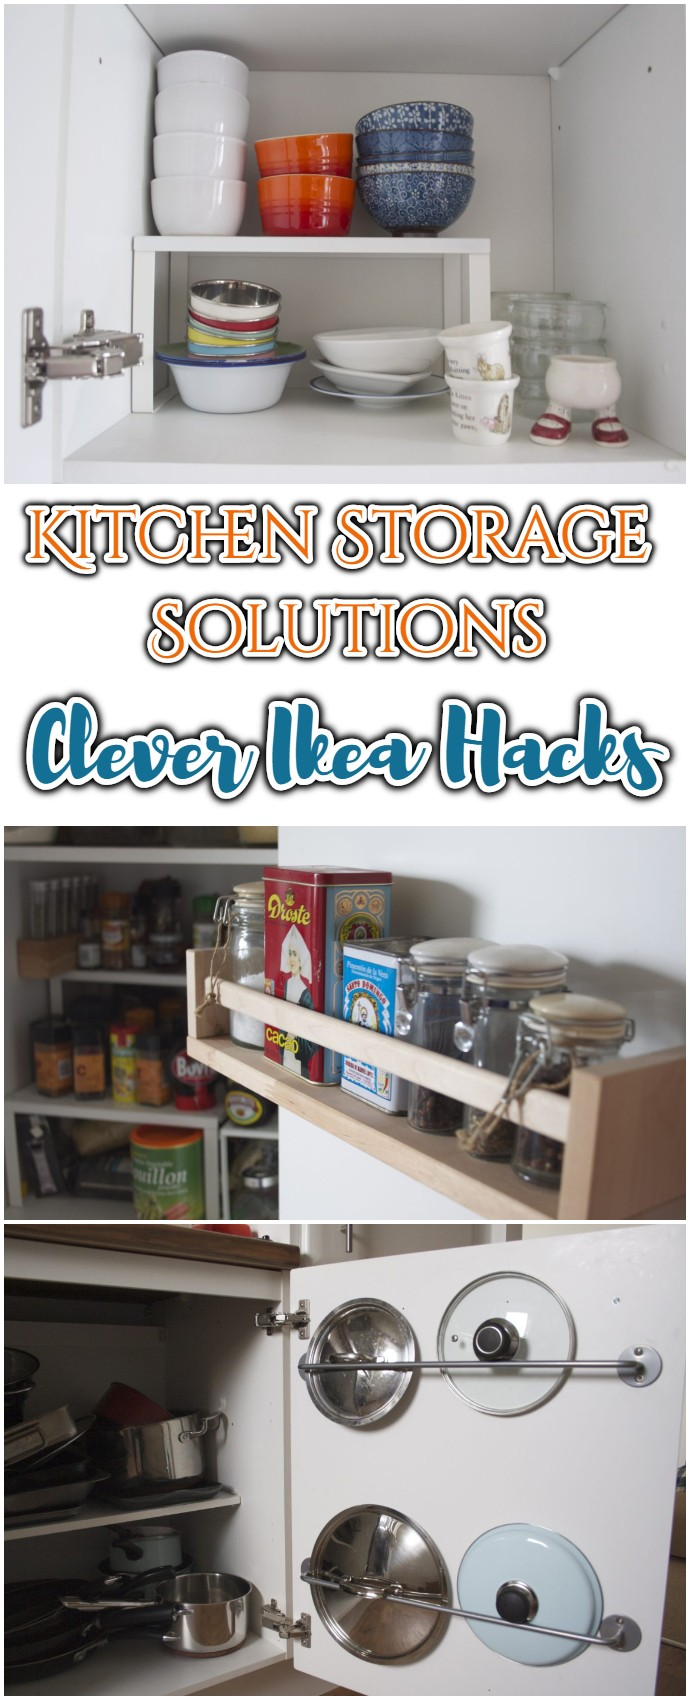 Kitchen Storage Solutions Clever Ikea Hacks